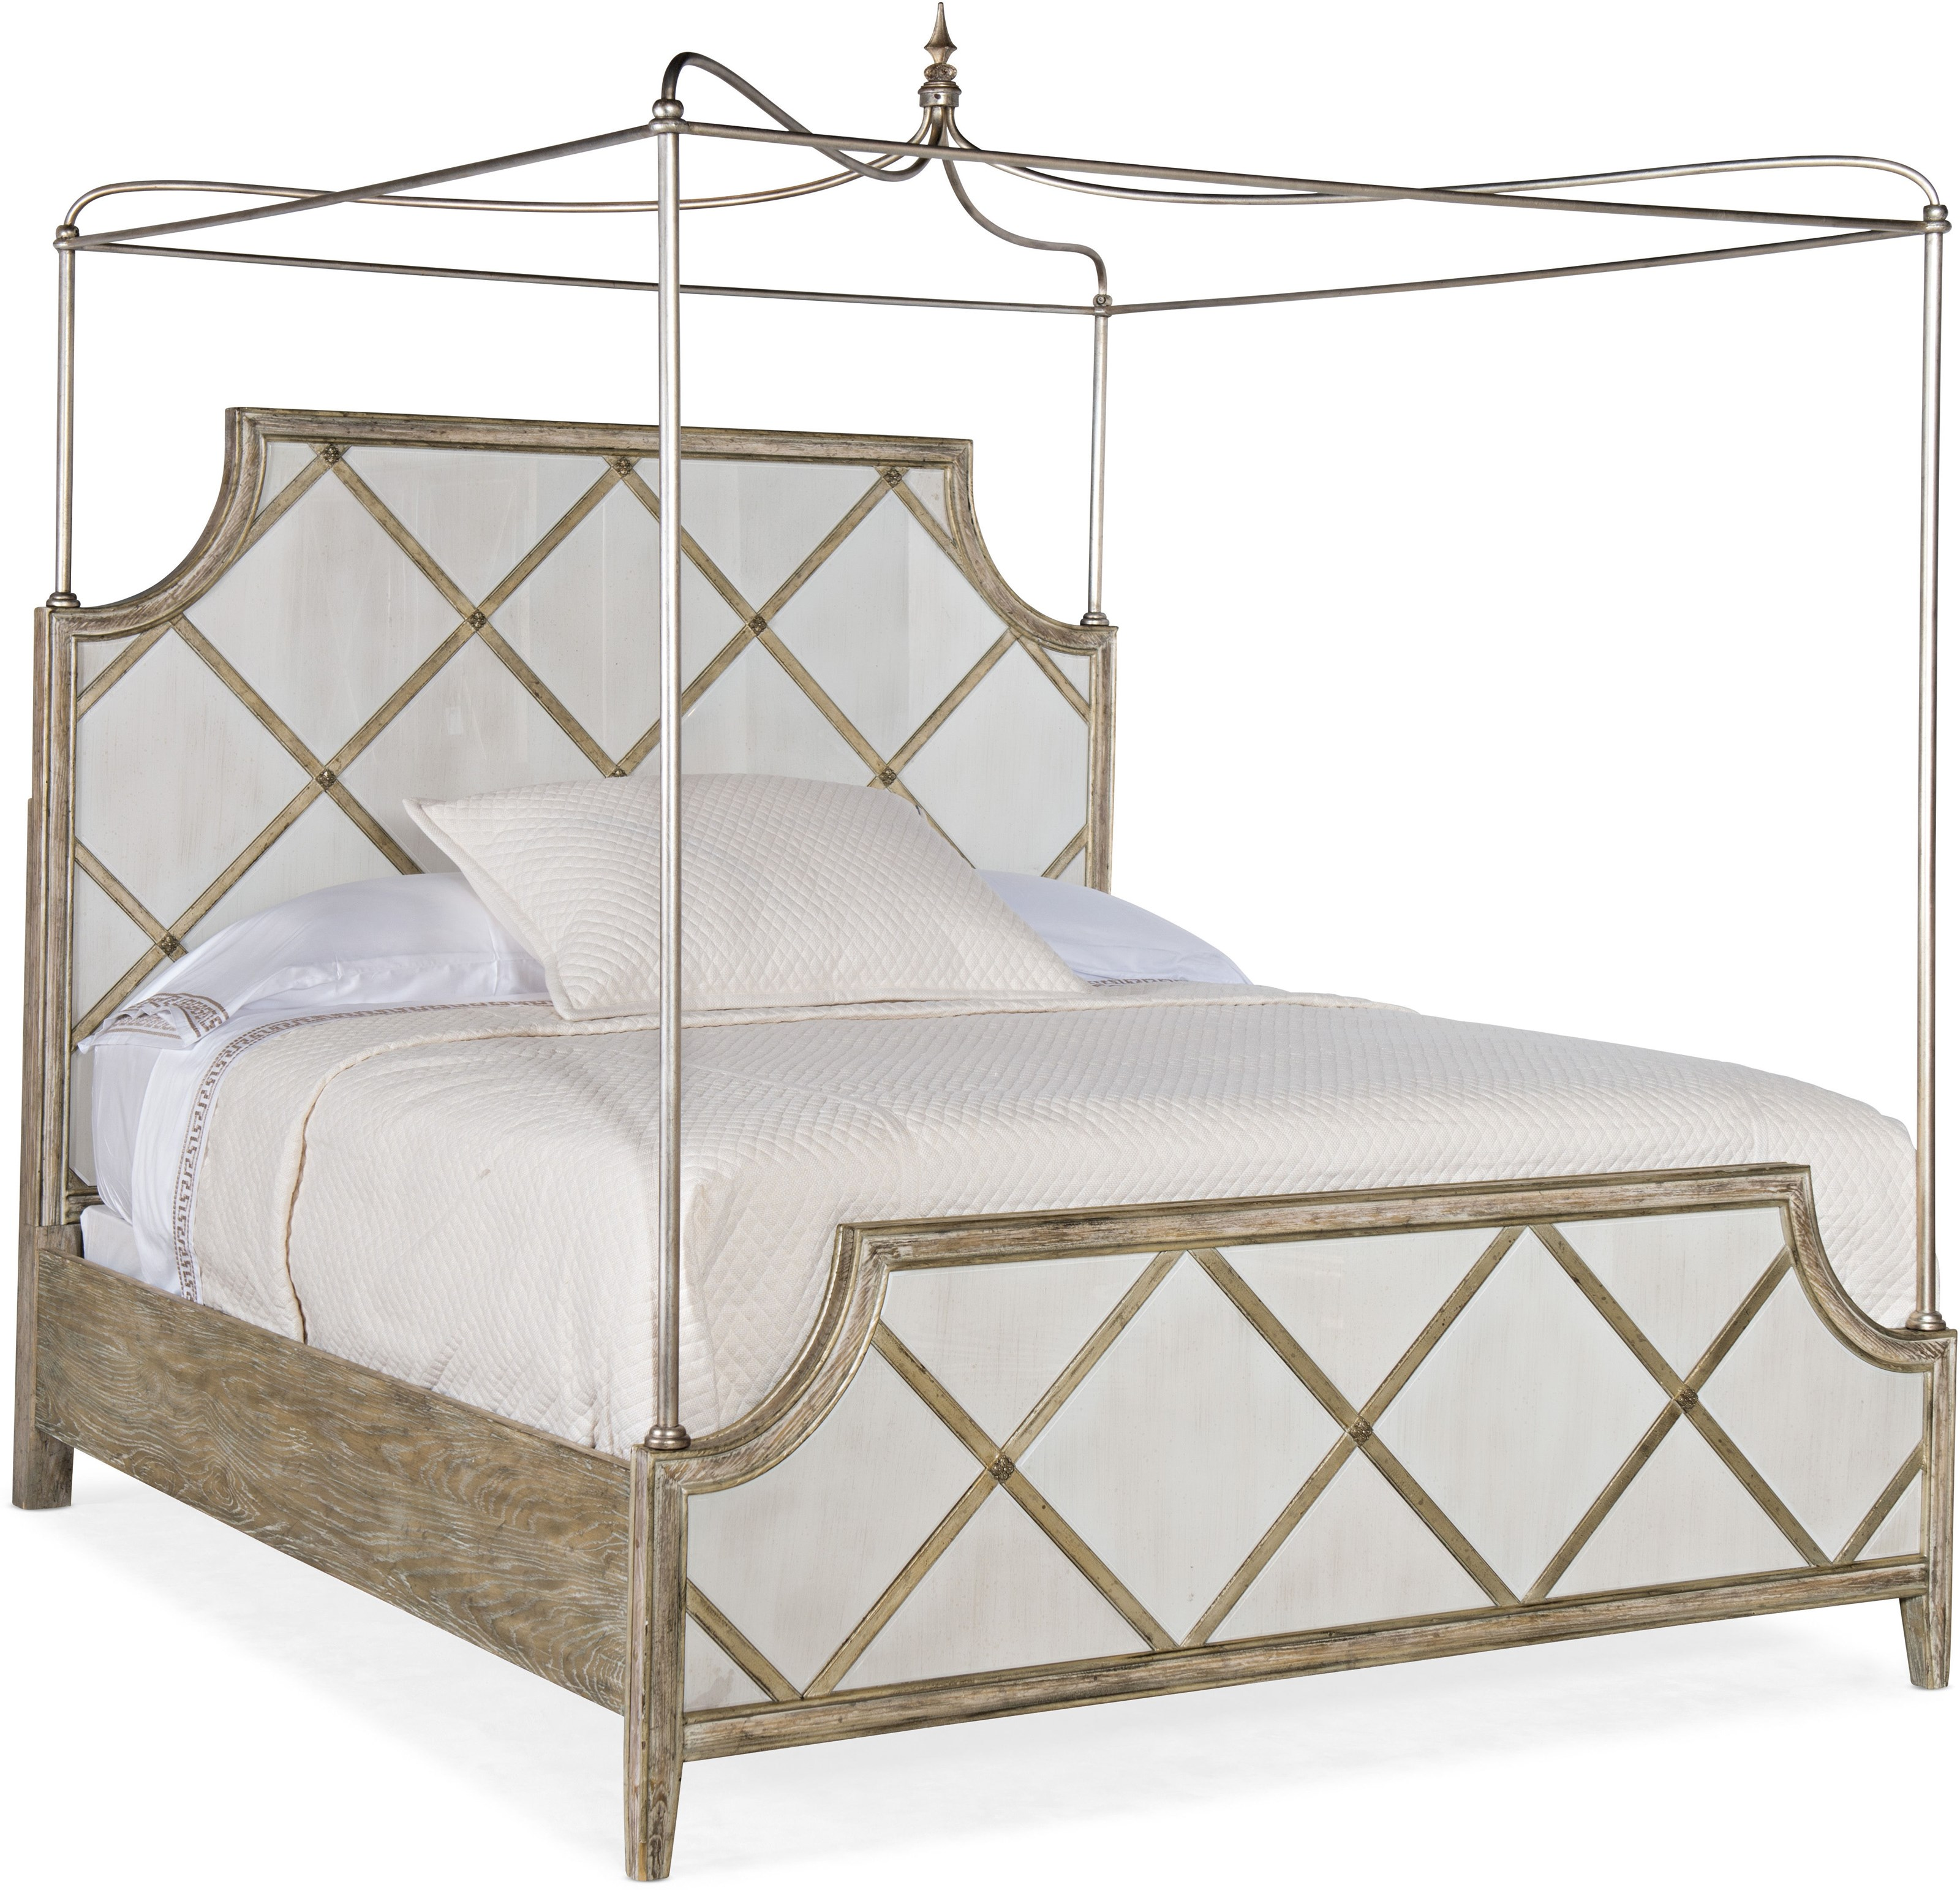 Hooker Furniture Sanctuary 5875 90369 95 Diamont California King Canopy Bed Dunk Bright Furniture Canopy Beds